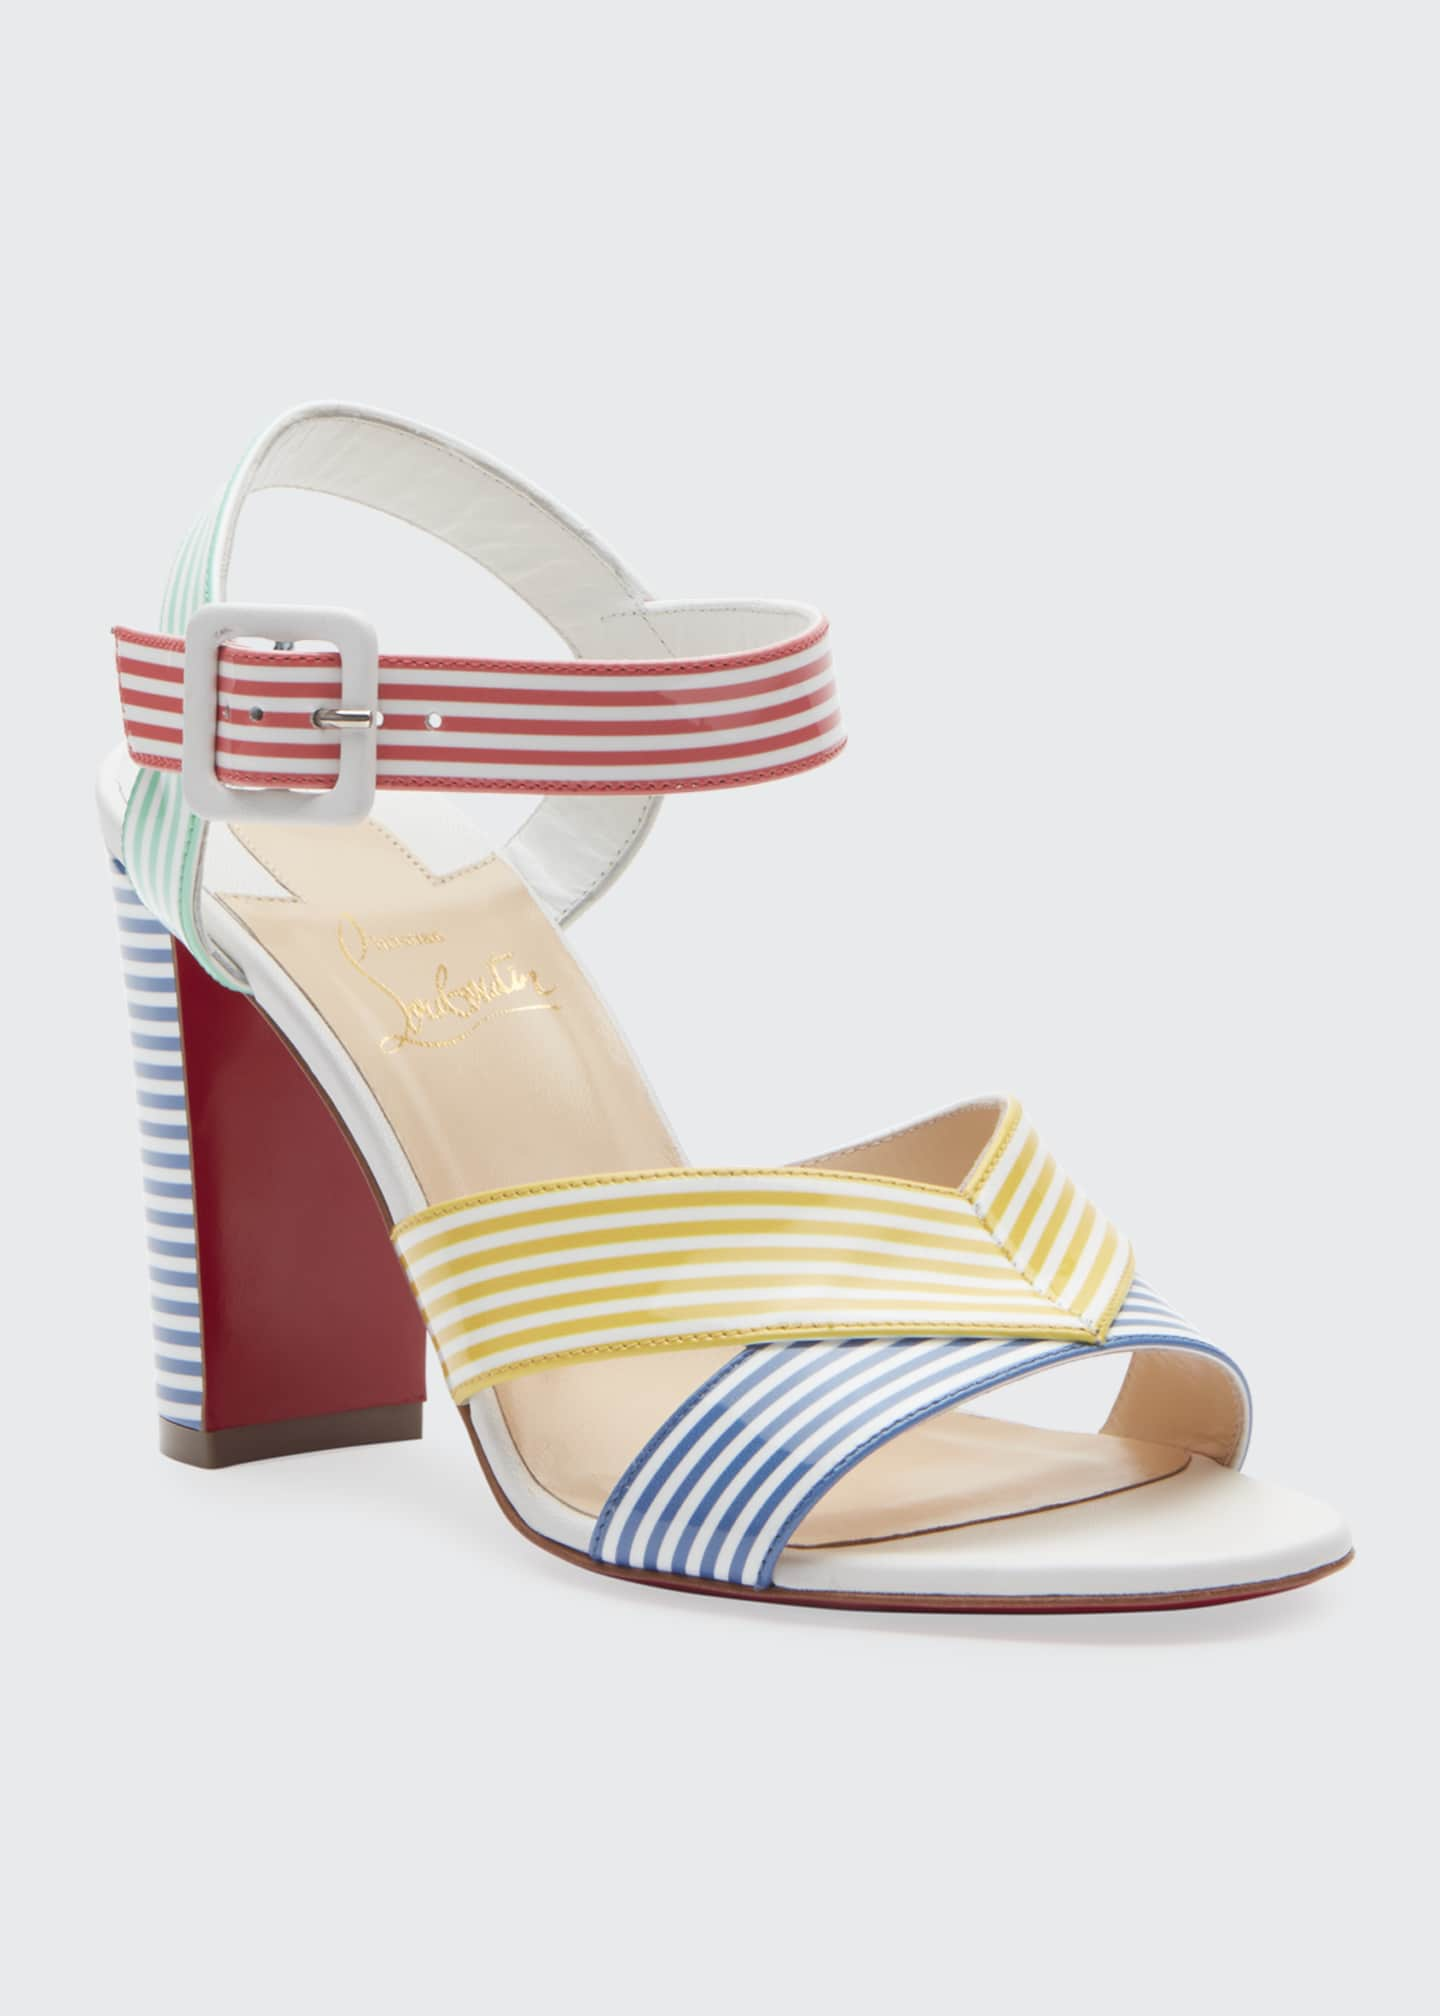 Image 2 of 2: Palavas Multicolored Striped 85mm Red Sole Sandals